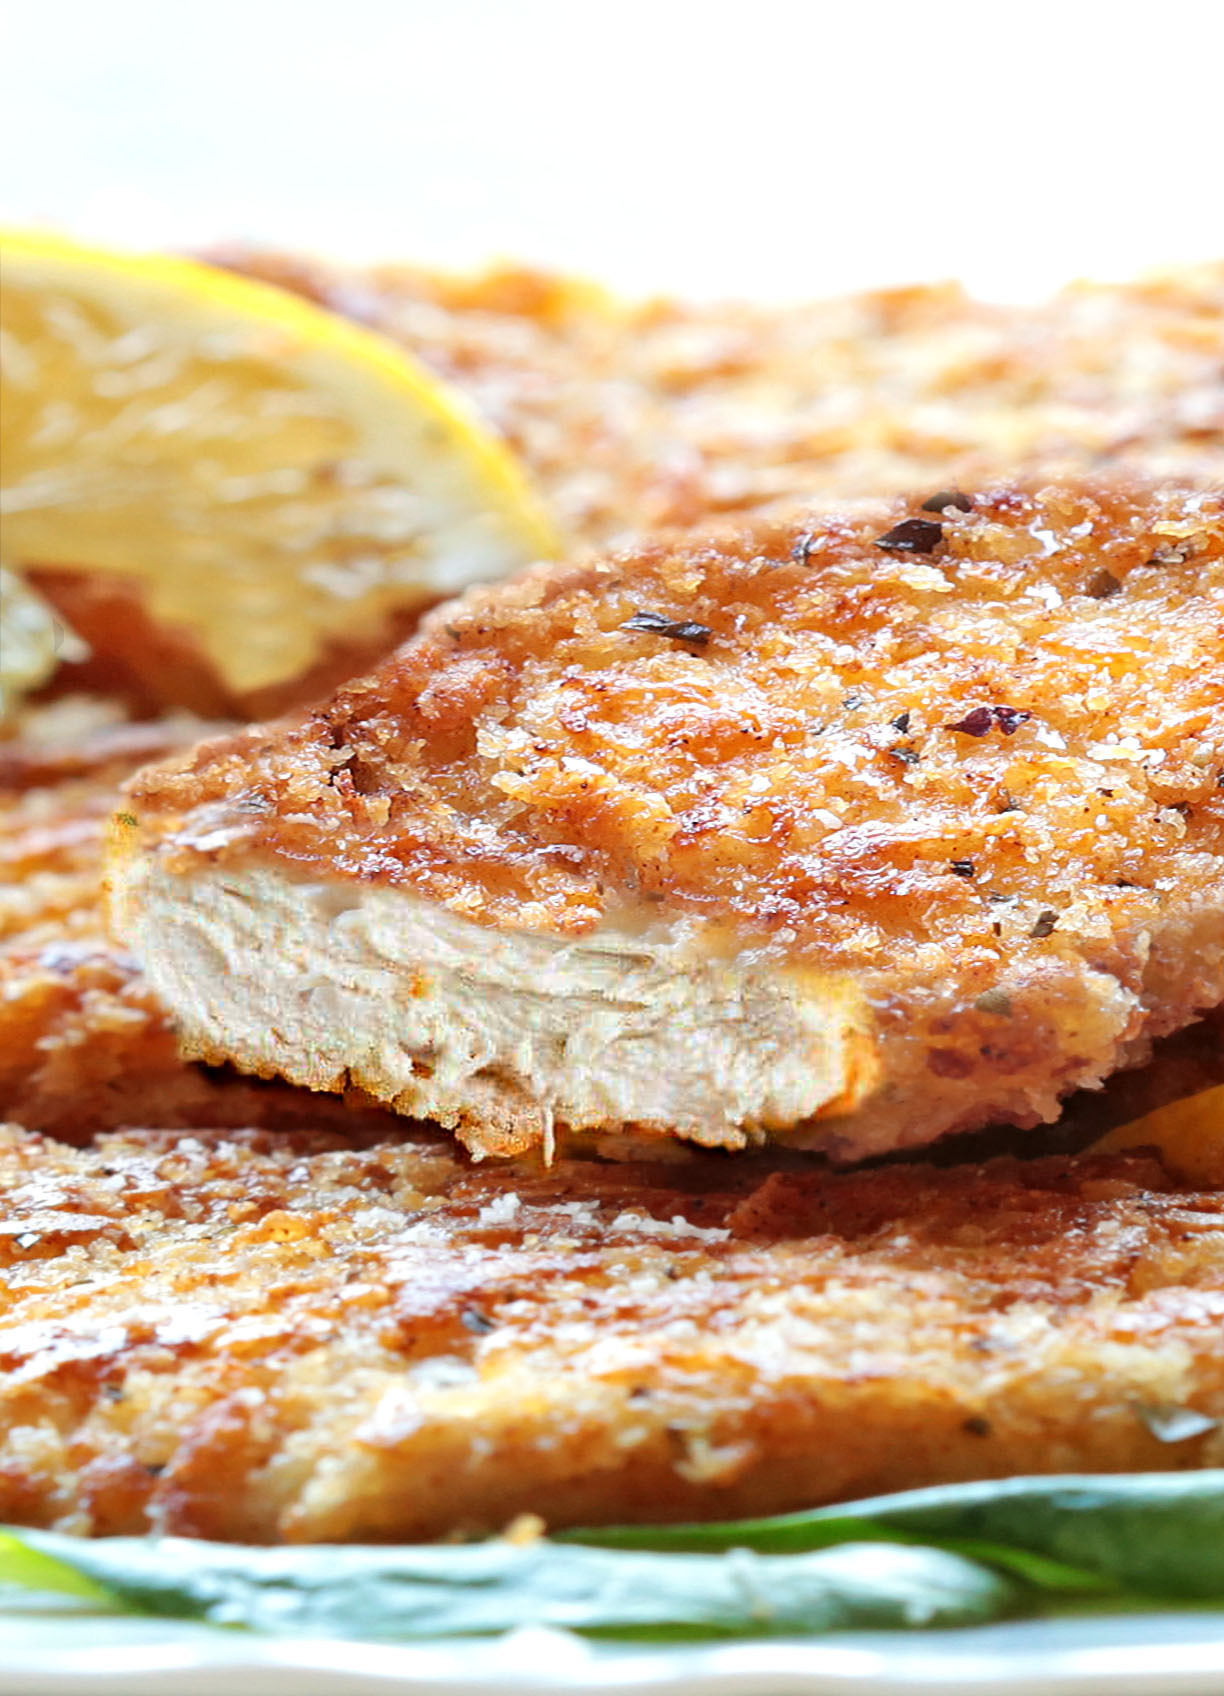 This outstanding parmesan crusted chicken recipe is a MUST on your chicken repertoire!